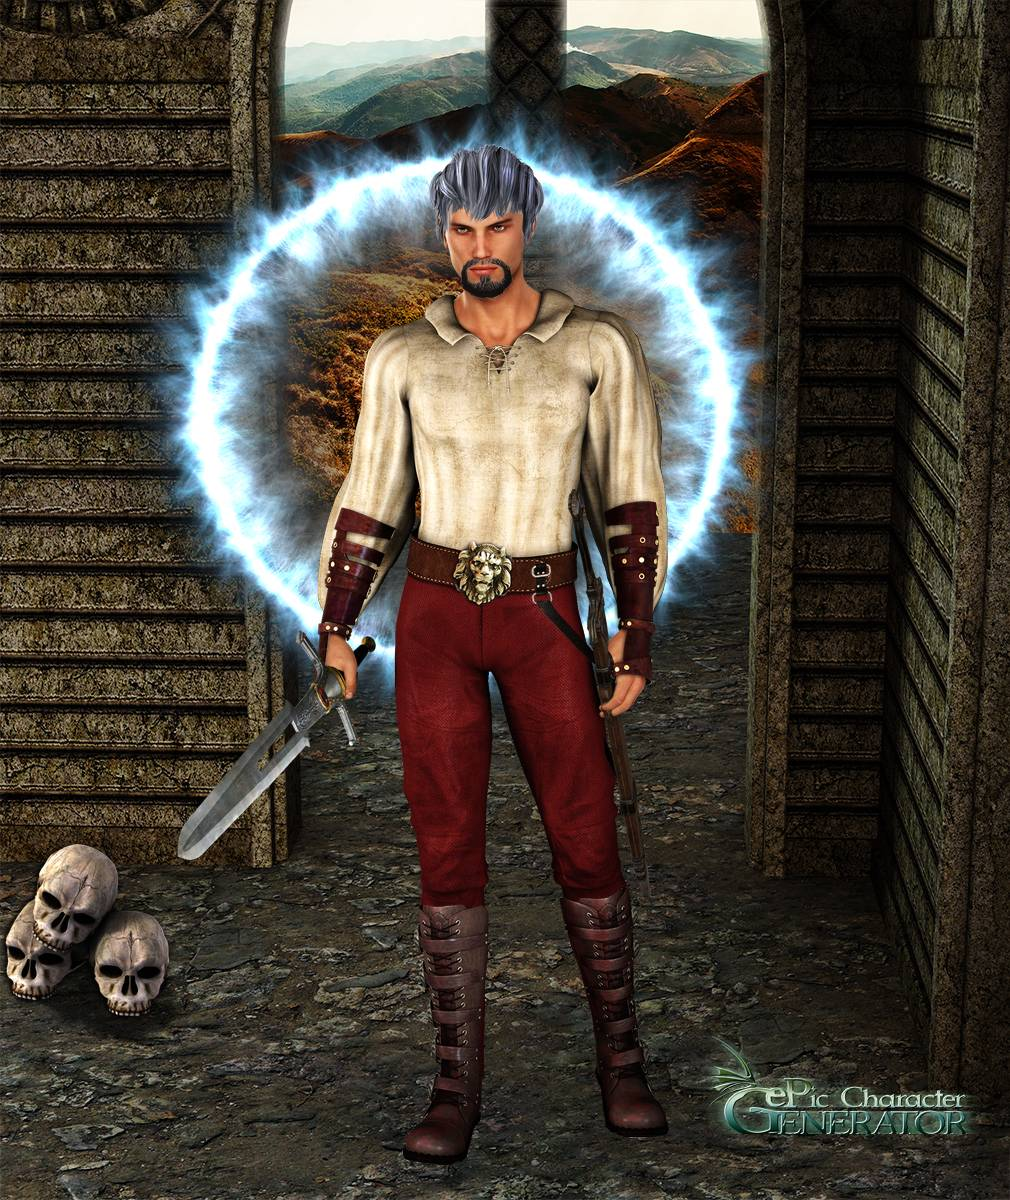 ePic Character Generator Season 2 Male Adventurer Screenshot 07